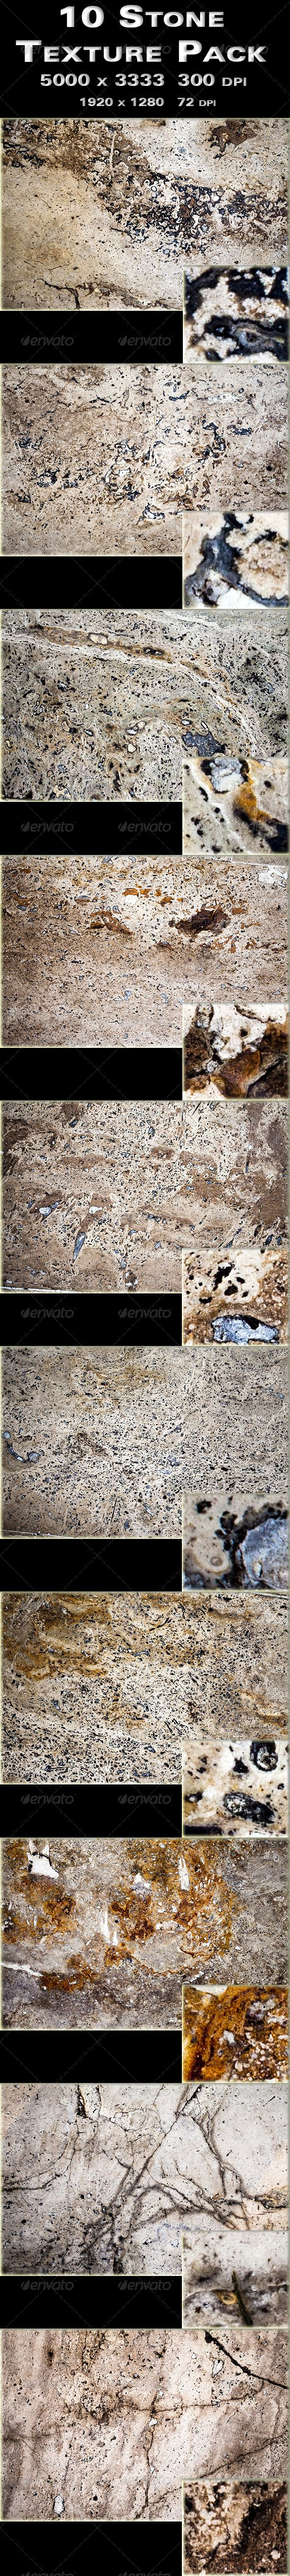 10 Stone Texture Pack #GraphicRiver 10 Stone Texture Pack Zip File contains: -10 Stone Texture Pack: 5000×3333 300 DPI -10 Stone Texture Pack ( Easy to use as a Website background ) : 1920×1280 72 DPI Use that Pack in your own design, in web sites, backgrounds, textures, posters, flyers, cards, booklets, brochures, artworks, blogs, any kind of presentations & promotions, screensaver, wallpapers. You can contact me If you need any help or any special texture pack Please rate:) Please share…